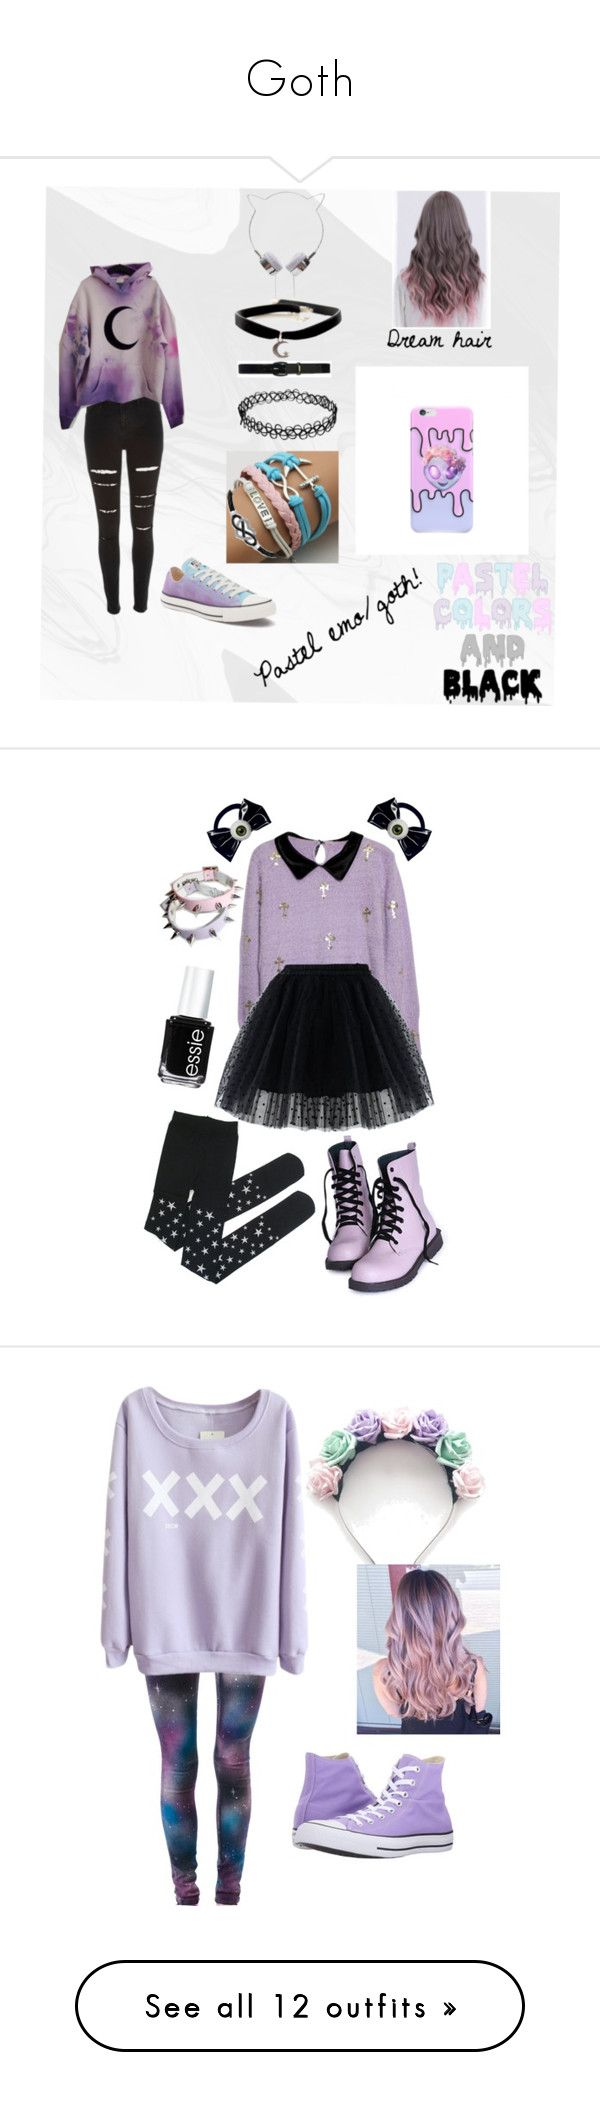 """""""Goth"""" by tacocatmolly ❤ liked on Polyvore featuring shoes, sneakers, black white shoes, black and white shoes, black and white trainer, white and black shoes, black and white sneakers, River Island, Converse and Jewel Exclusive"""